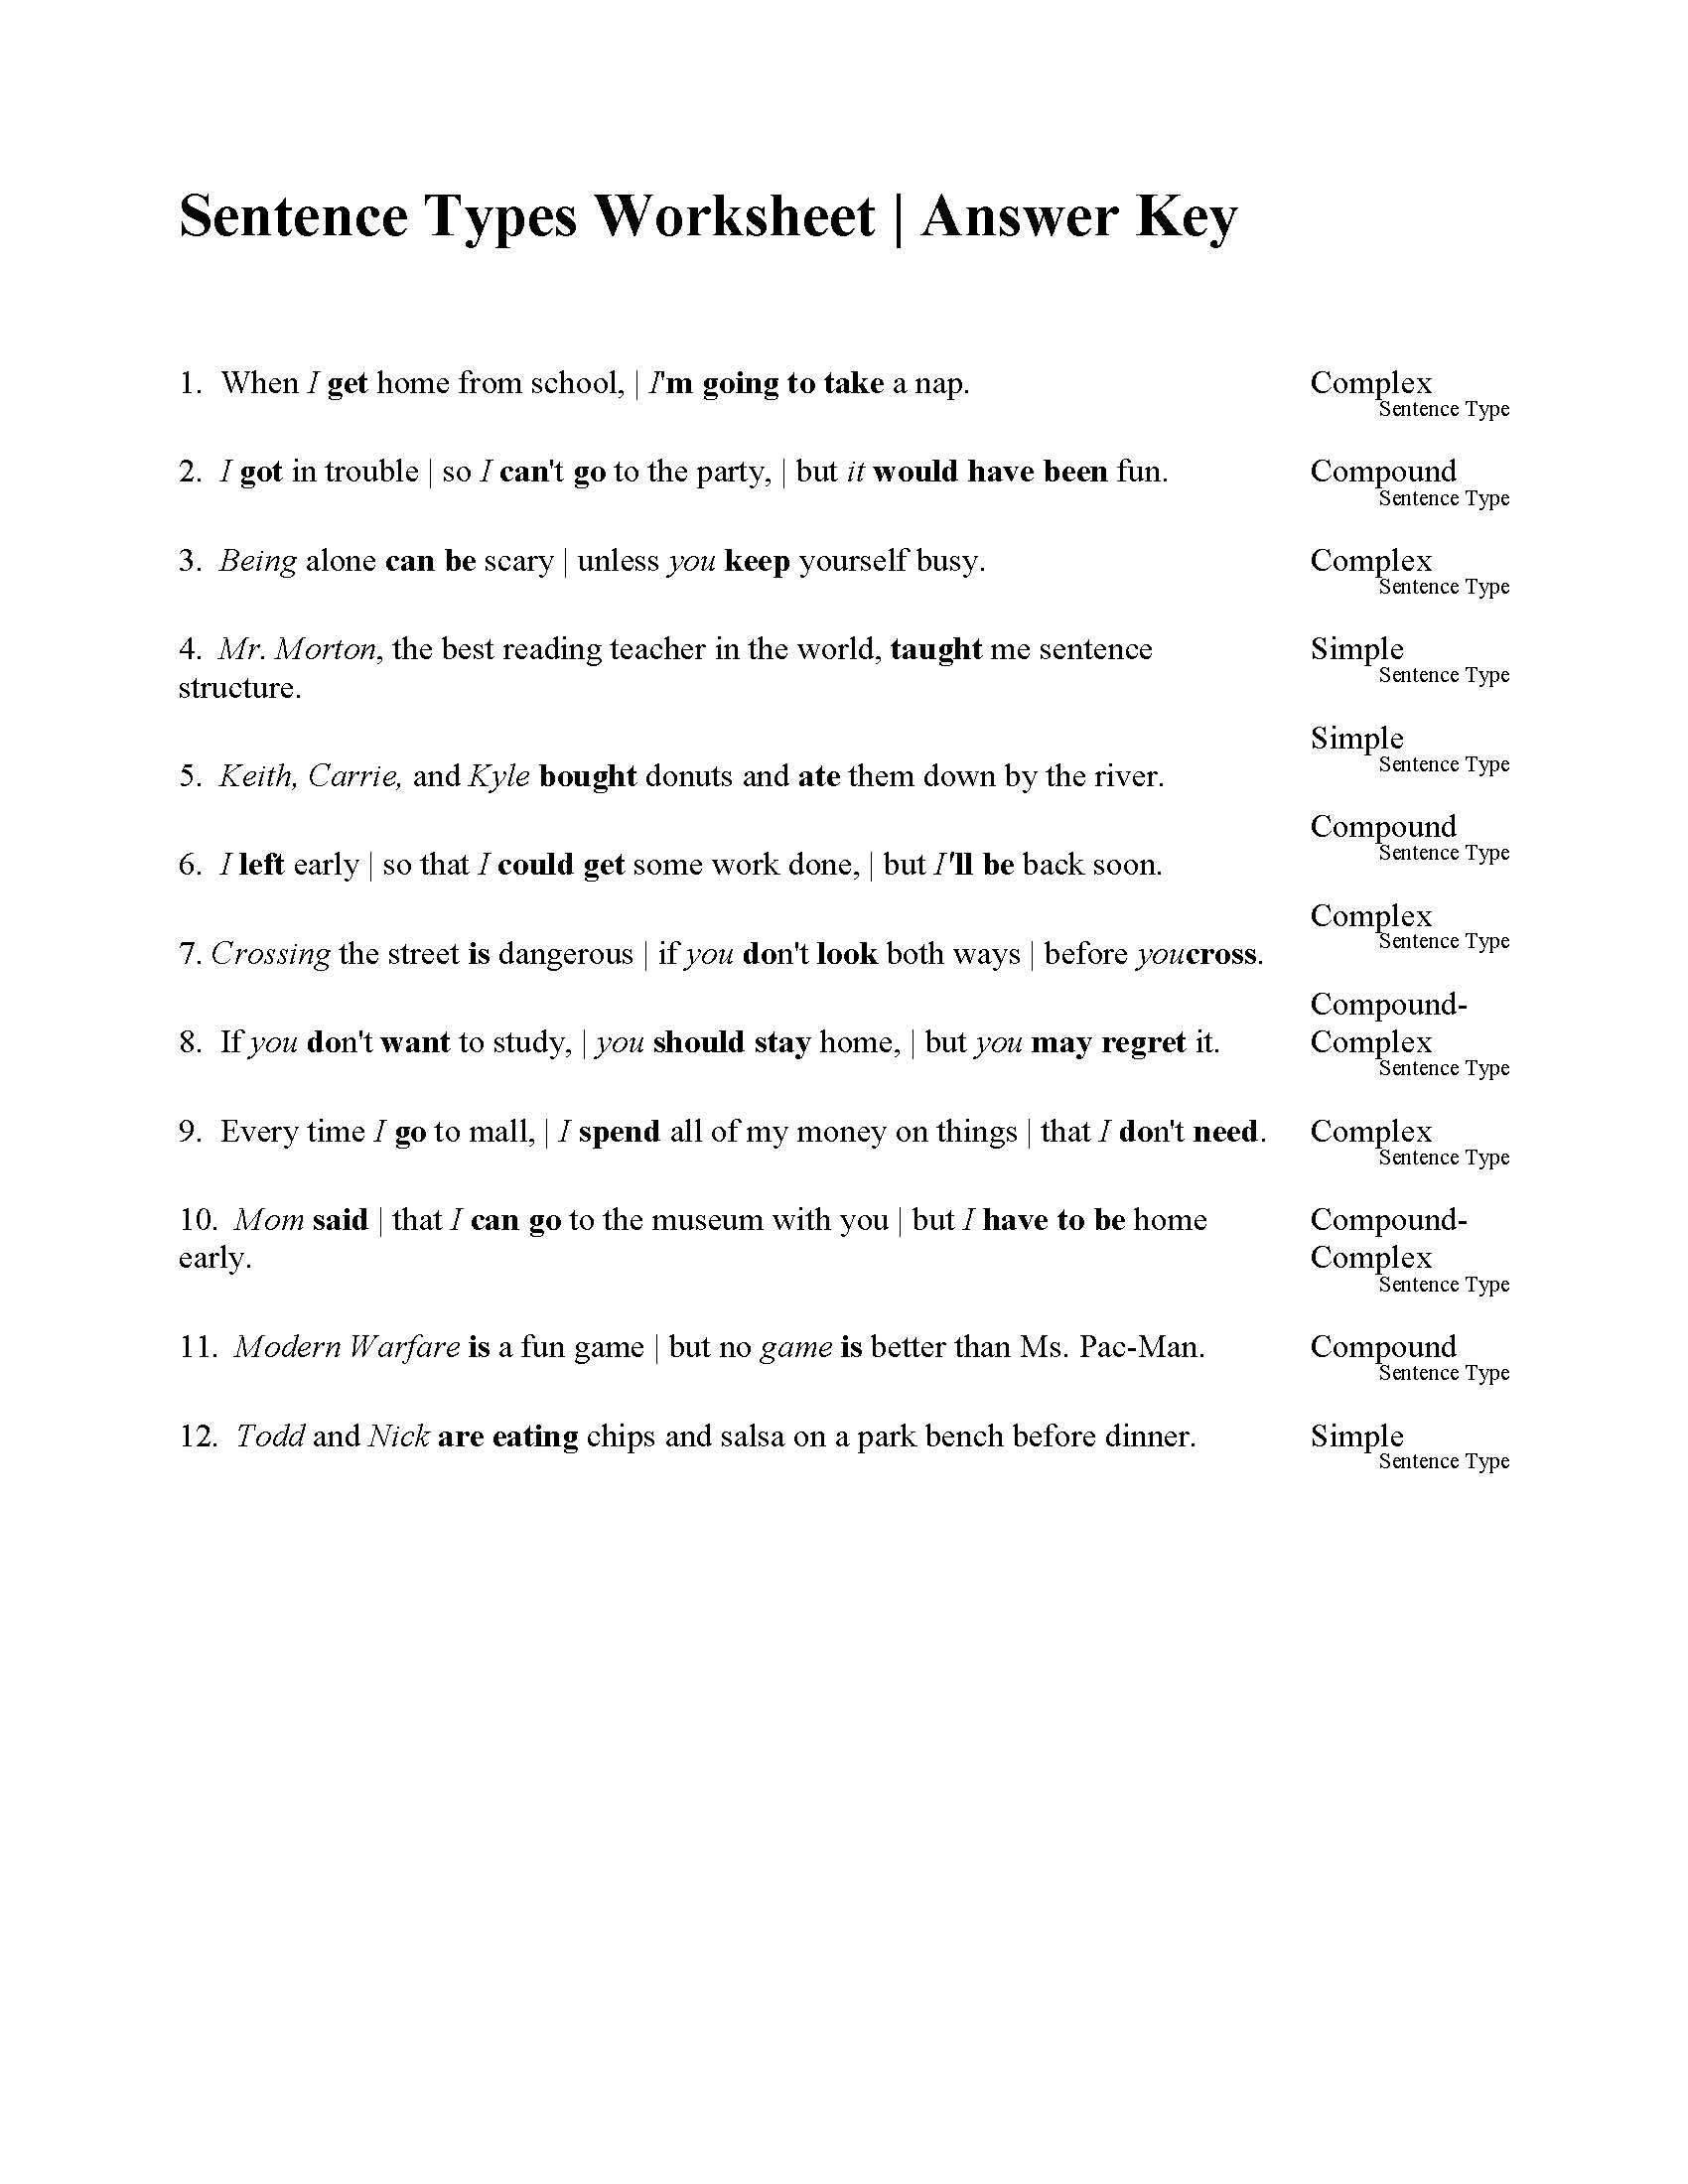 Sentences Types Worksheet Answers